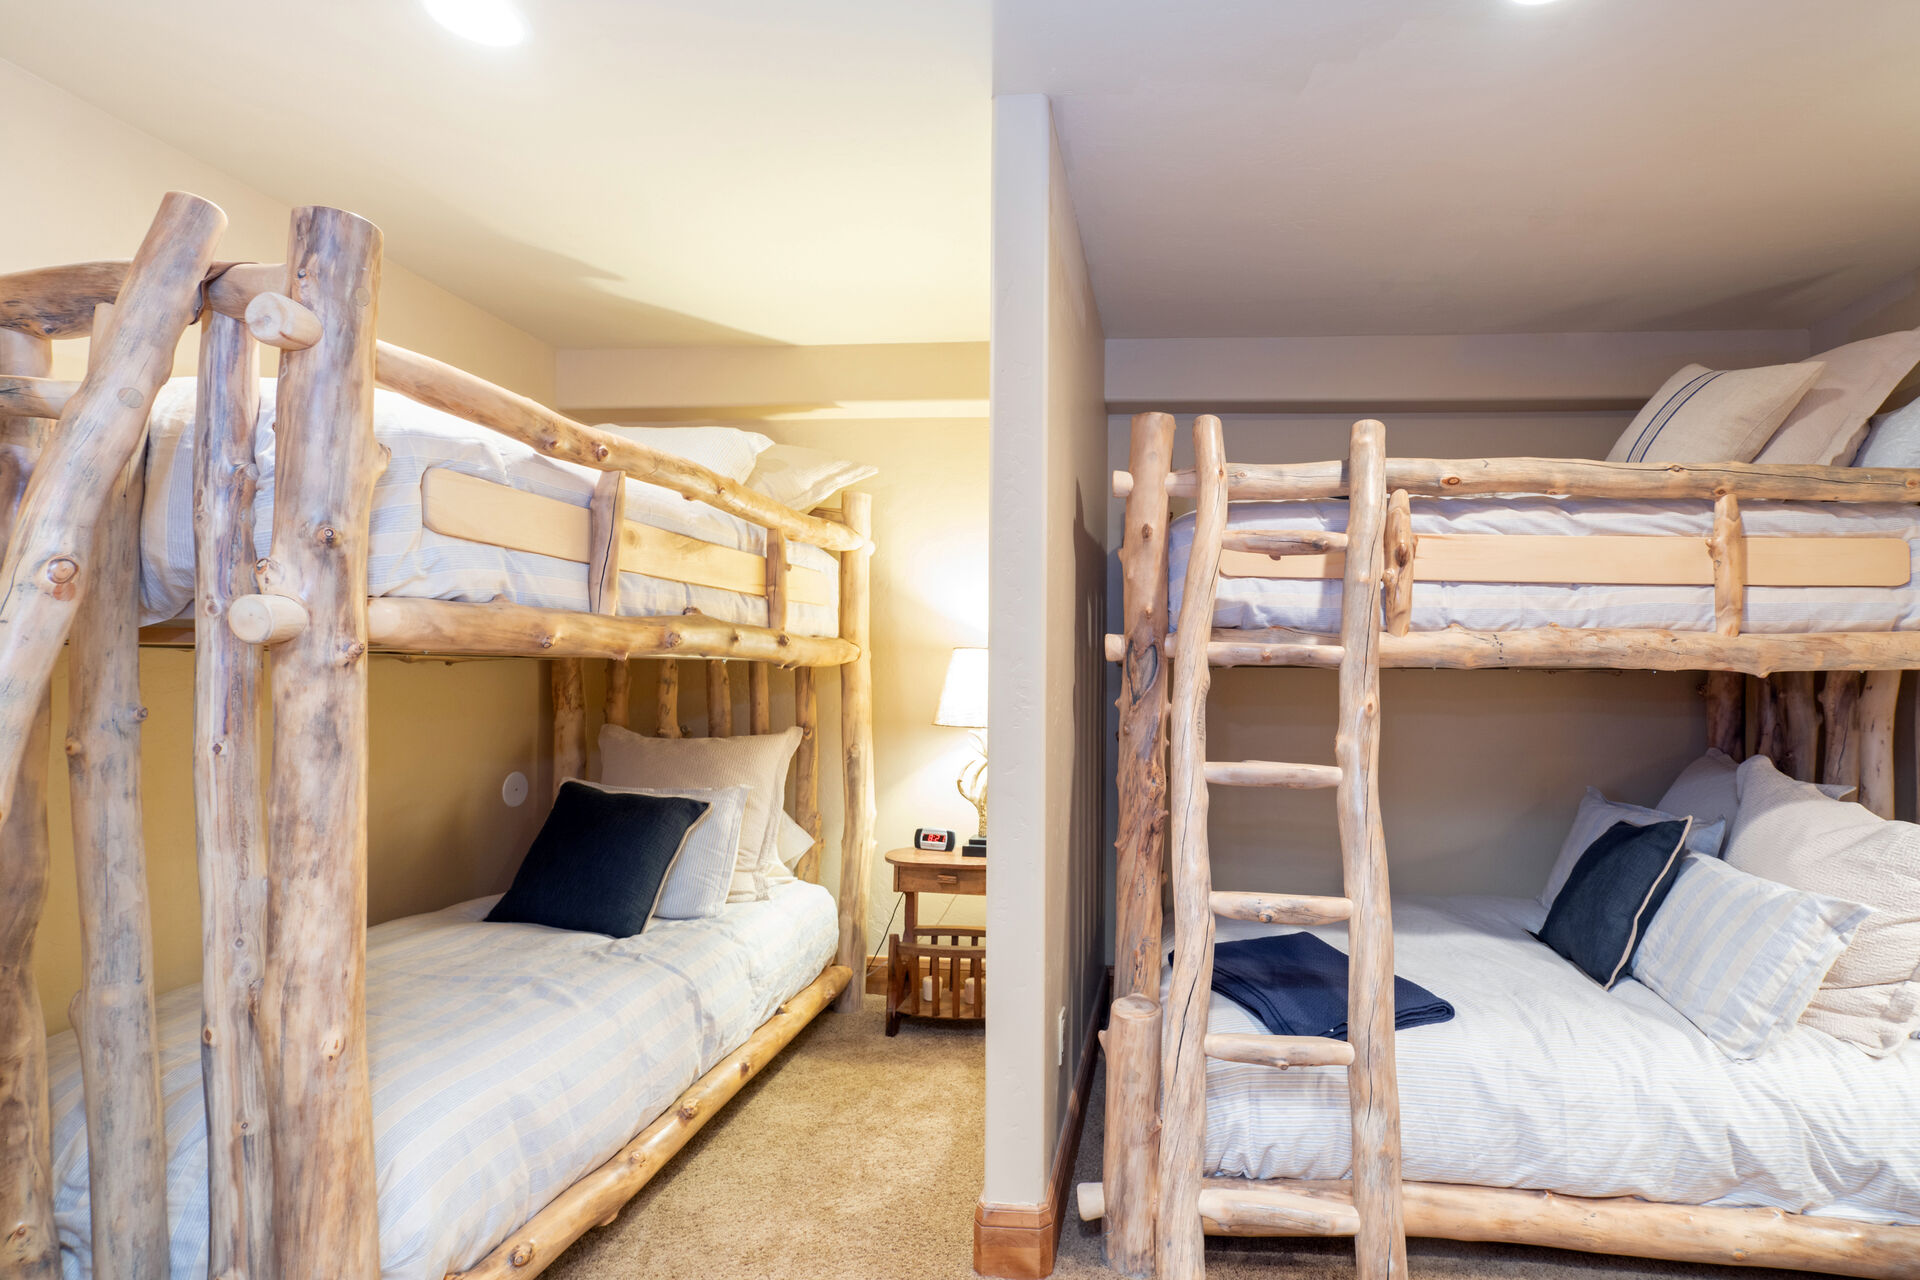 Two sets of bunk beds in a side bedroom.